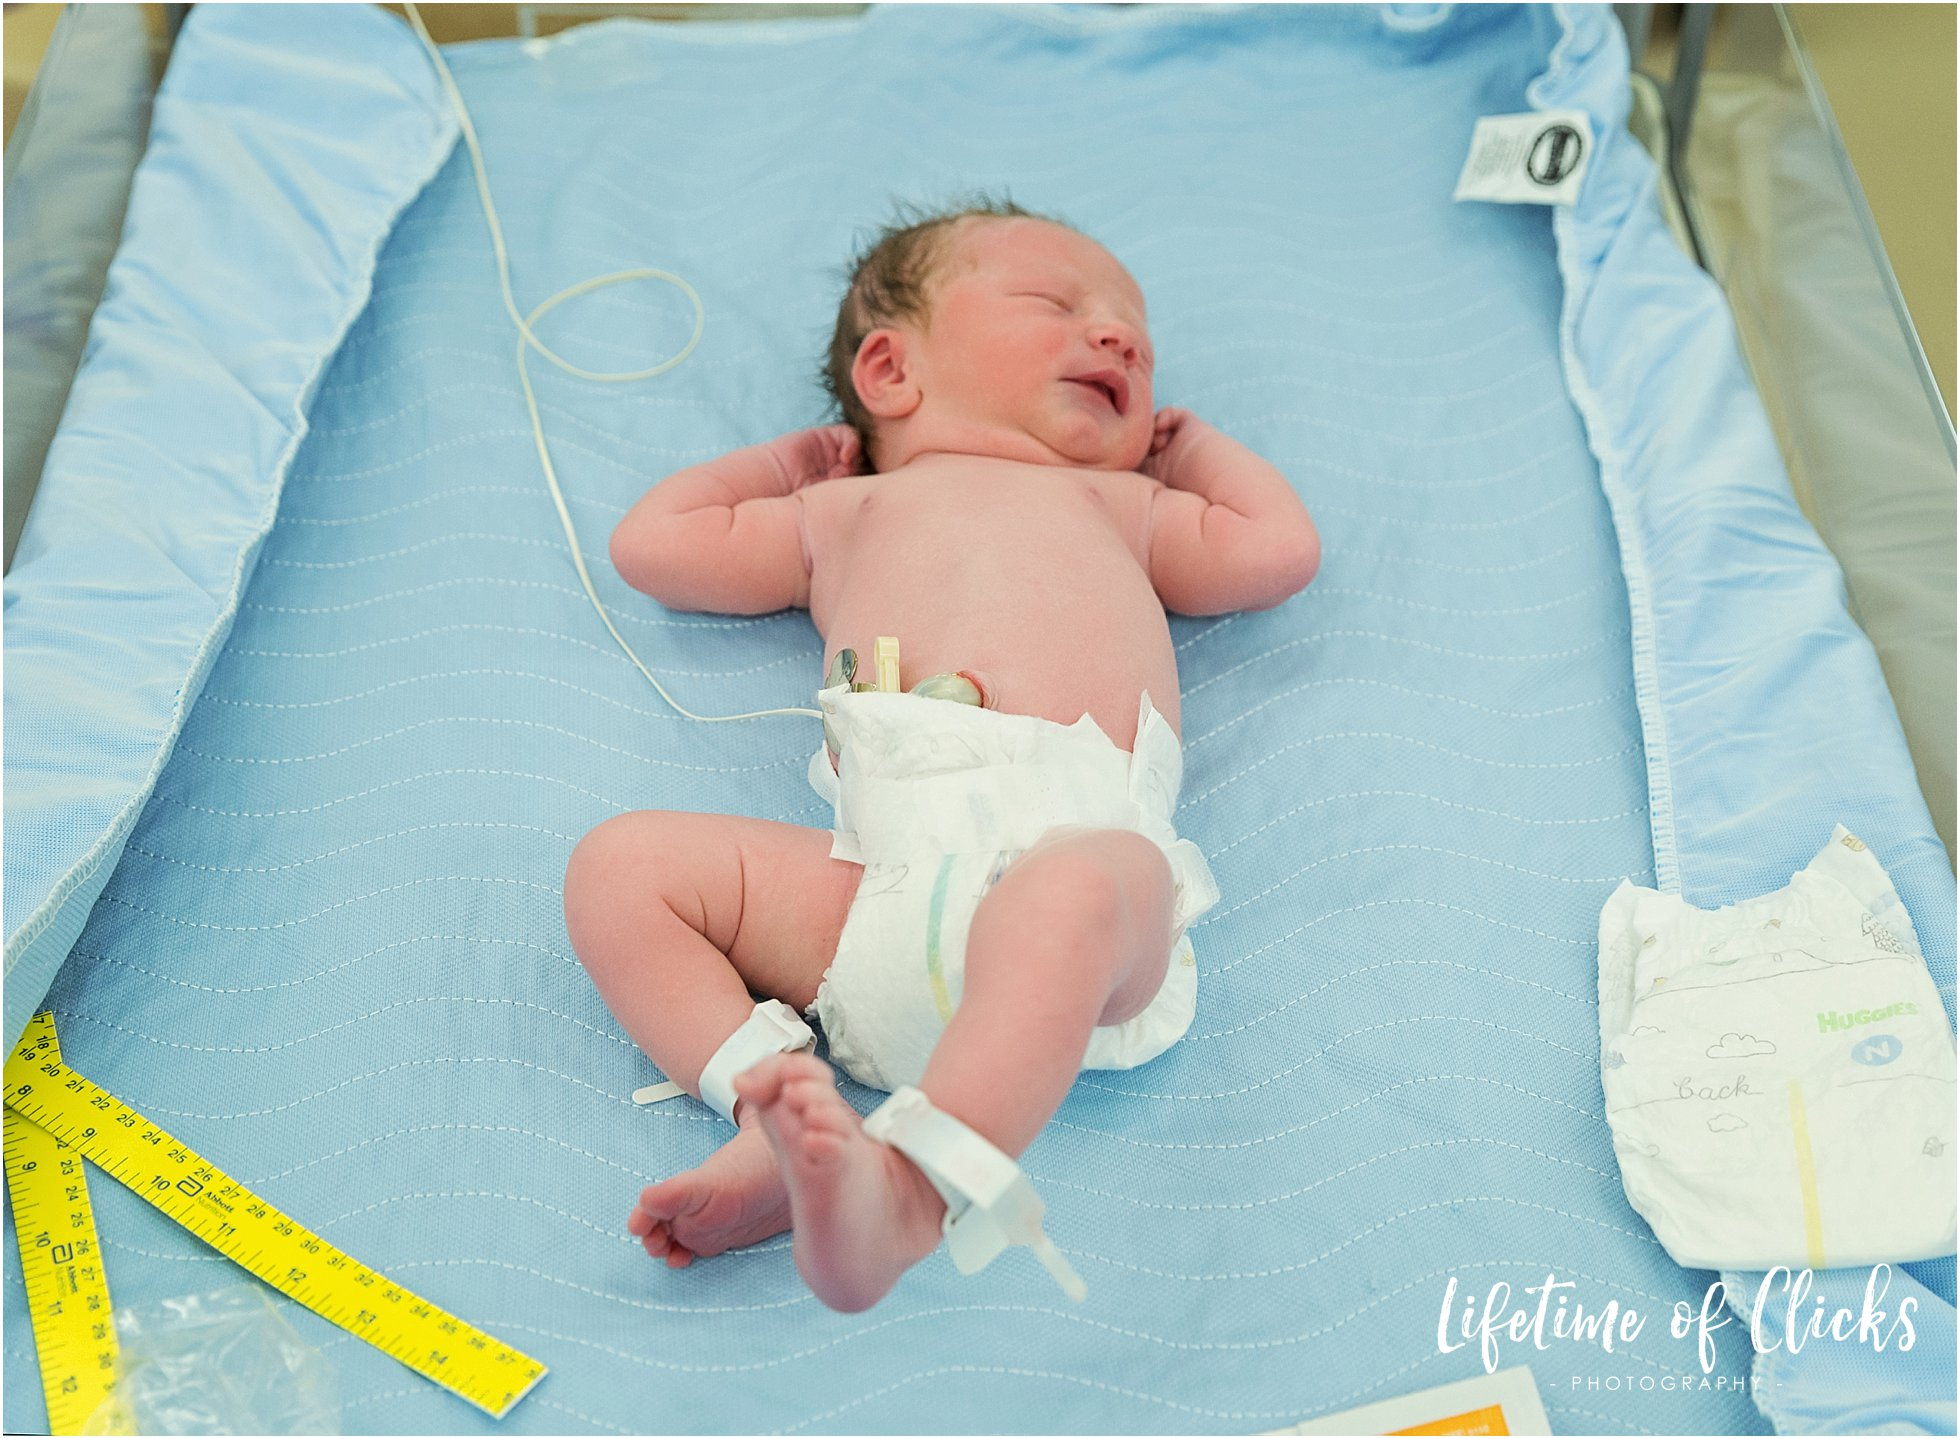 First images of newborn baby boy